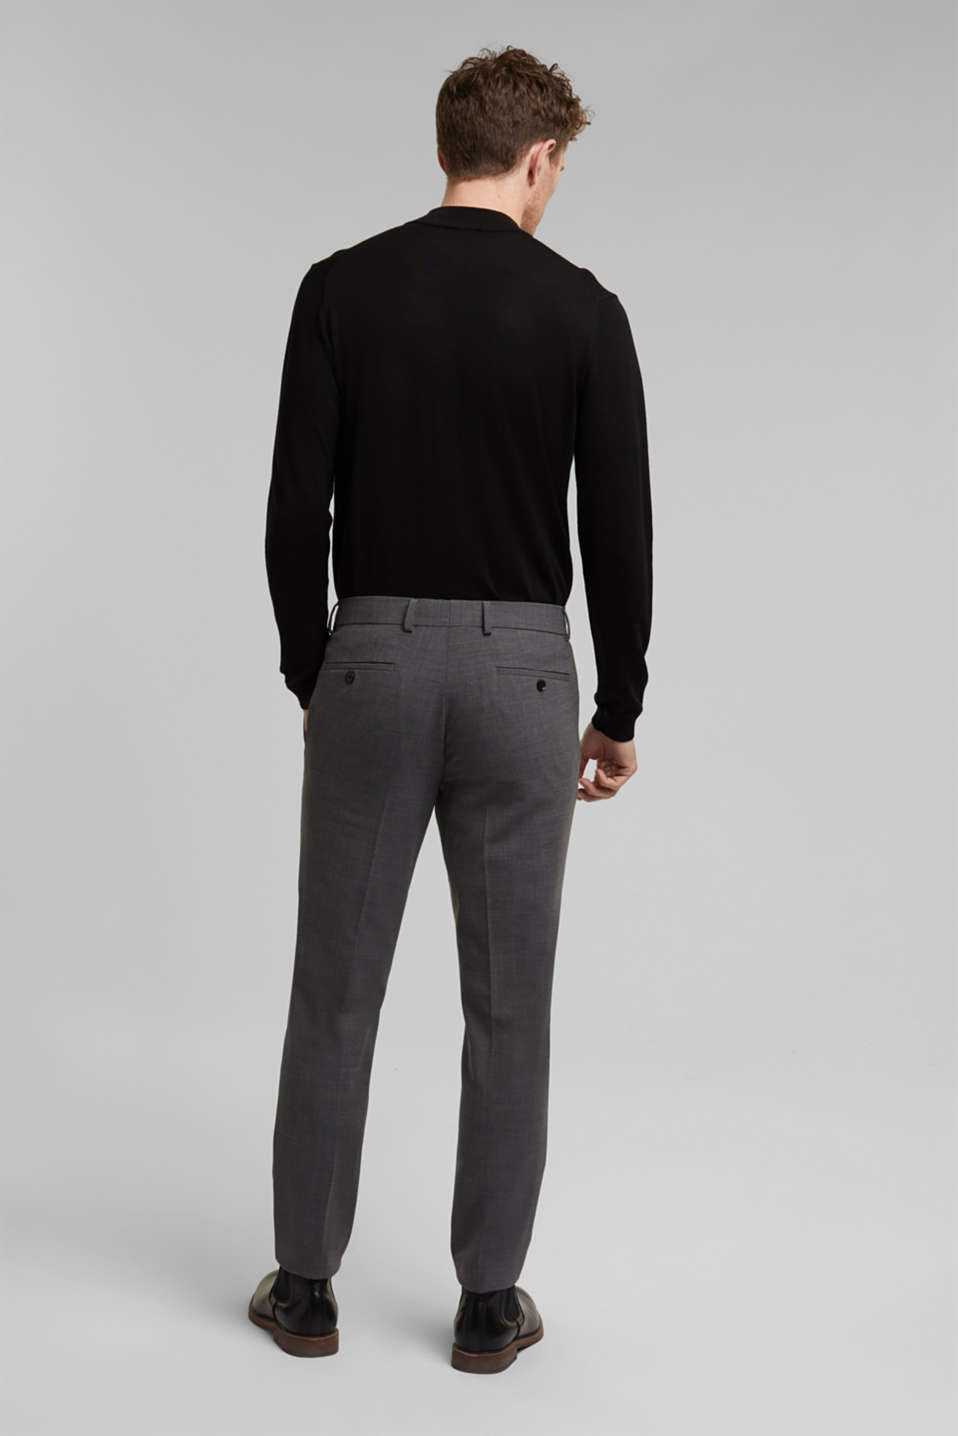 ACTIVE SUIT BLACK trousers made of blended wool, DARK GREY 5, detail image number 1